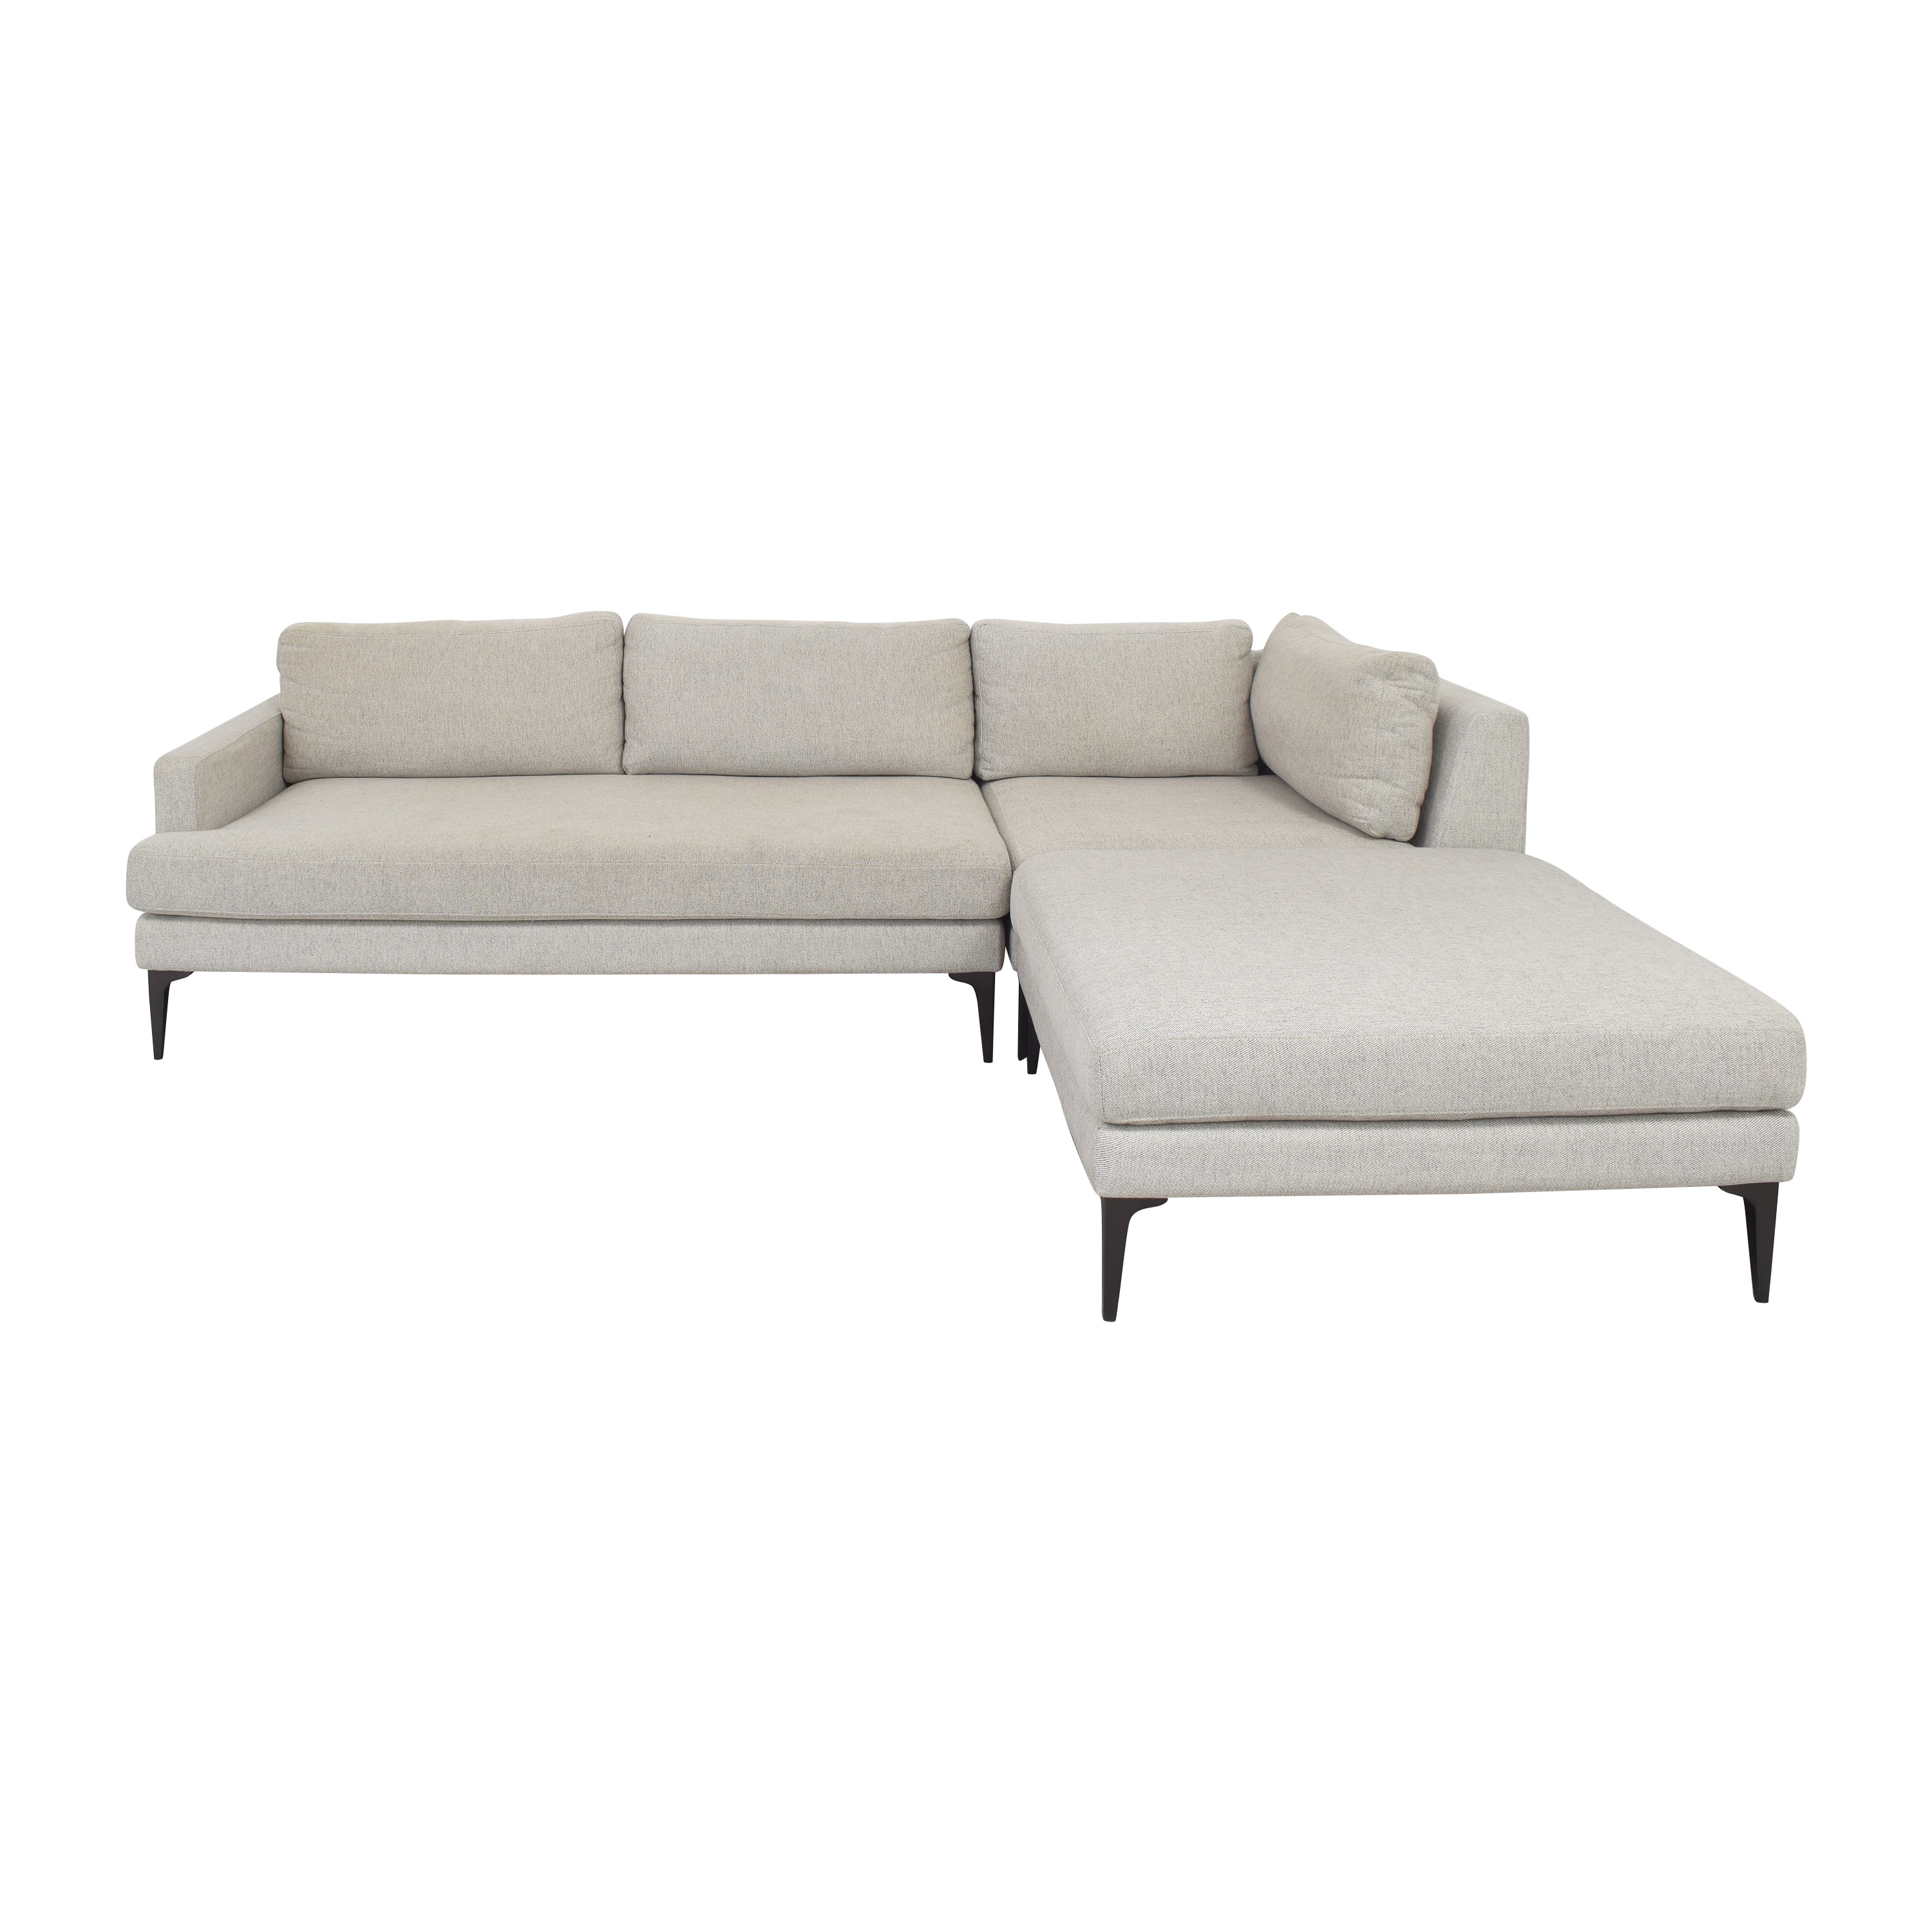 West Elm West Elm Andes Three Piece Sectional Sofa with Chaise discount